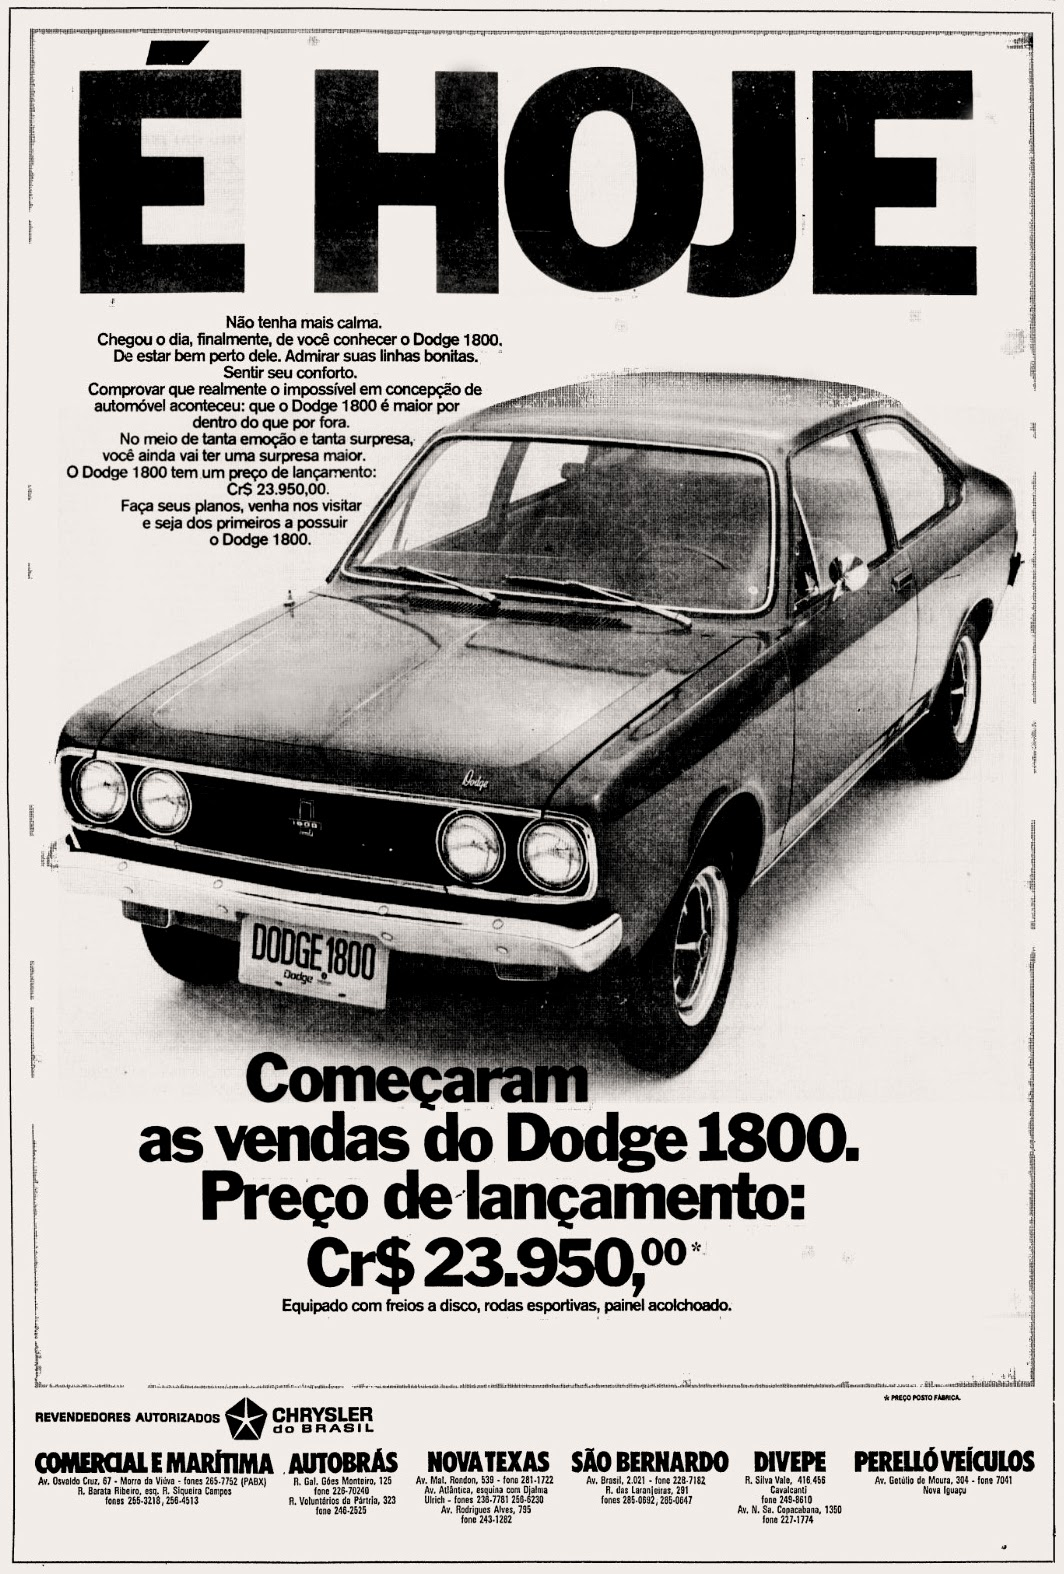 Chrysler. 1973. brazilian advertising cars in the 70. os anos 70. história da década de 70; Brazil in the 70s. propaganda carros anos 70. Oswaldo Hernandez.